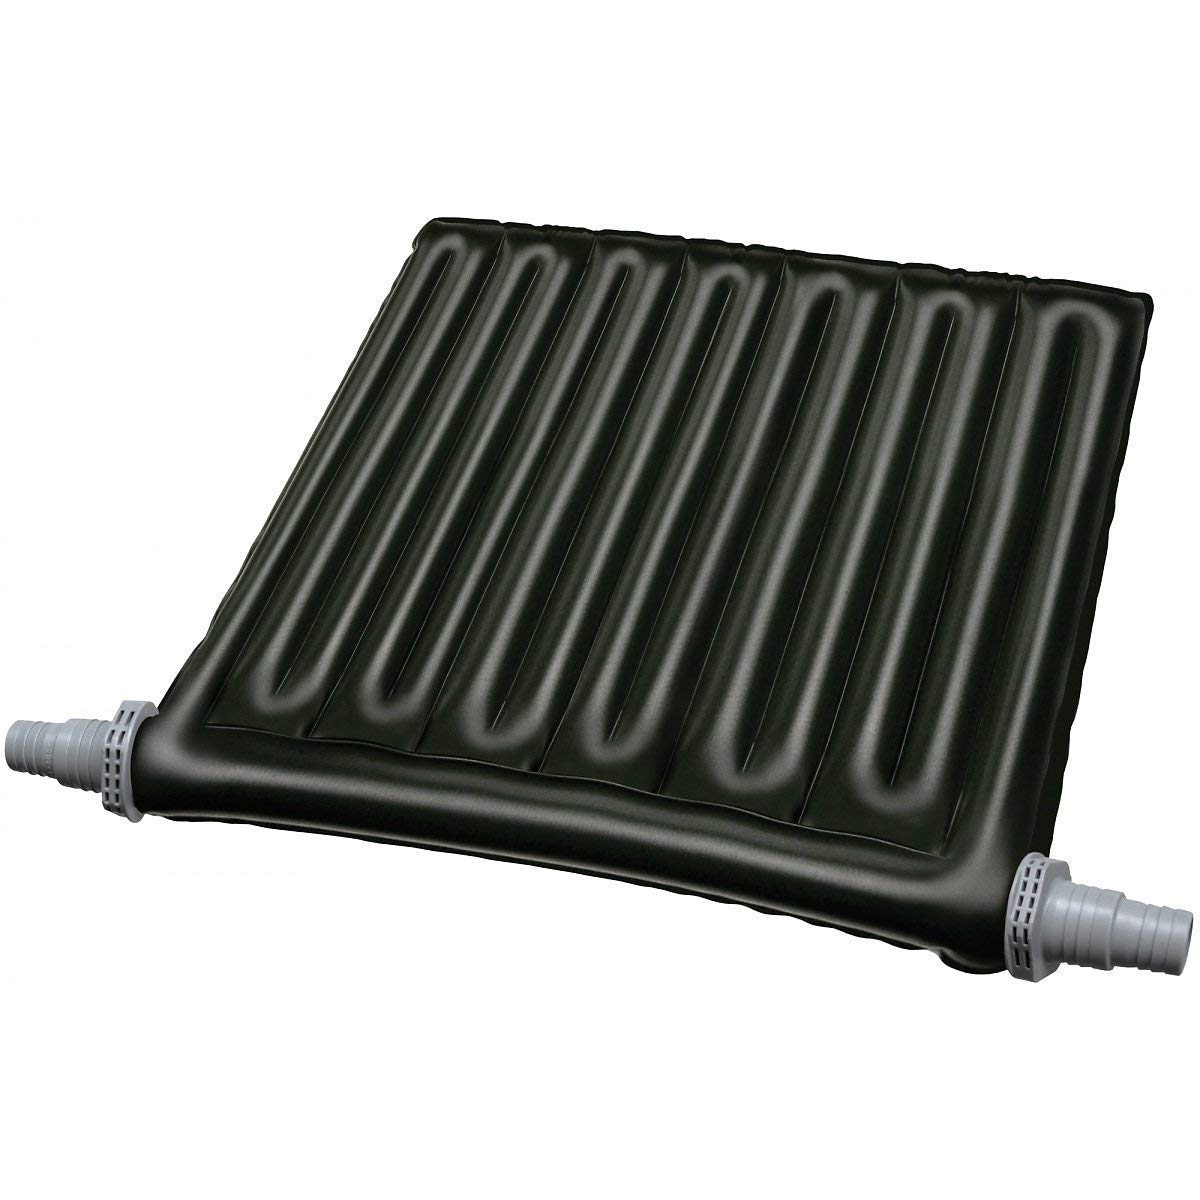 GAME 4527 SolarPRO XB2 Solar Heater for Swimming Pool by GAME